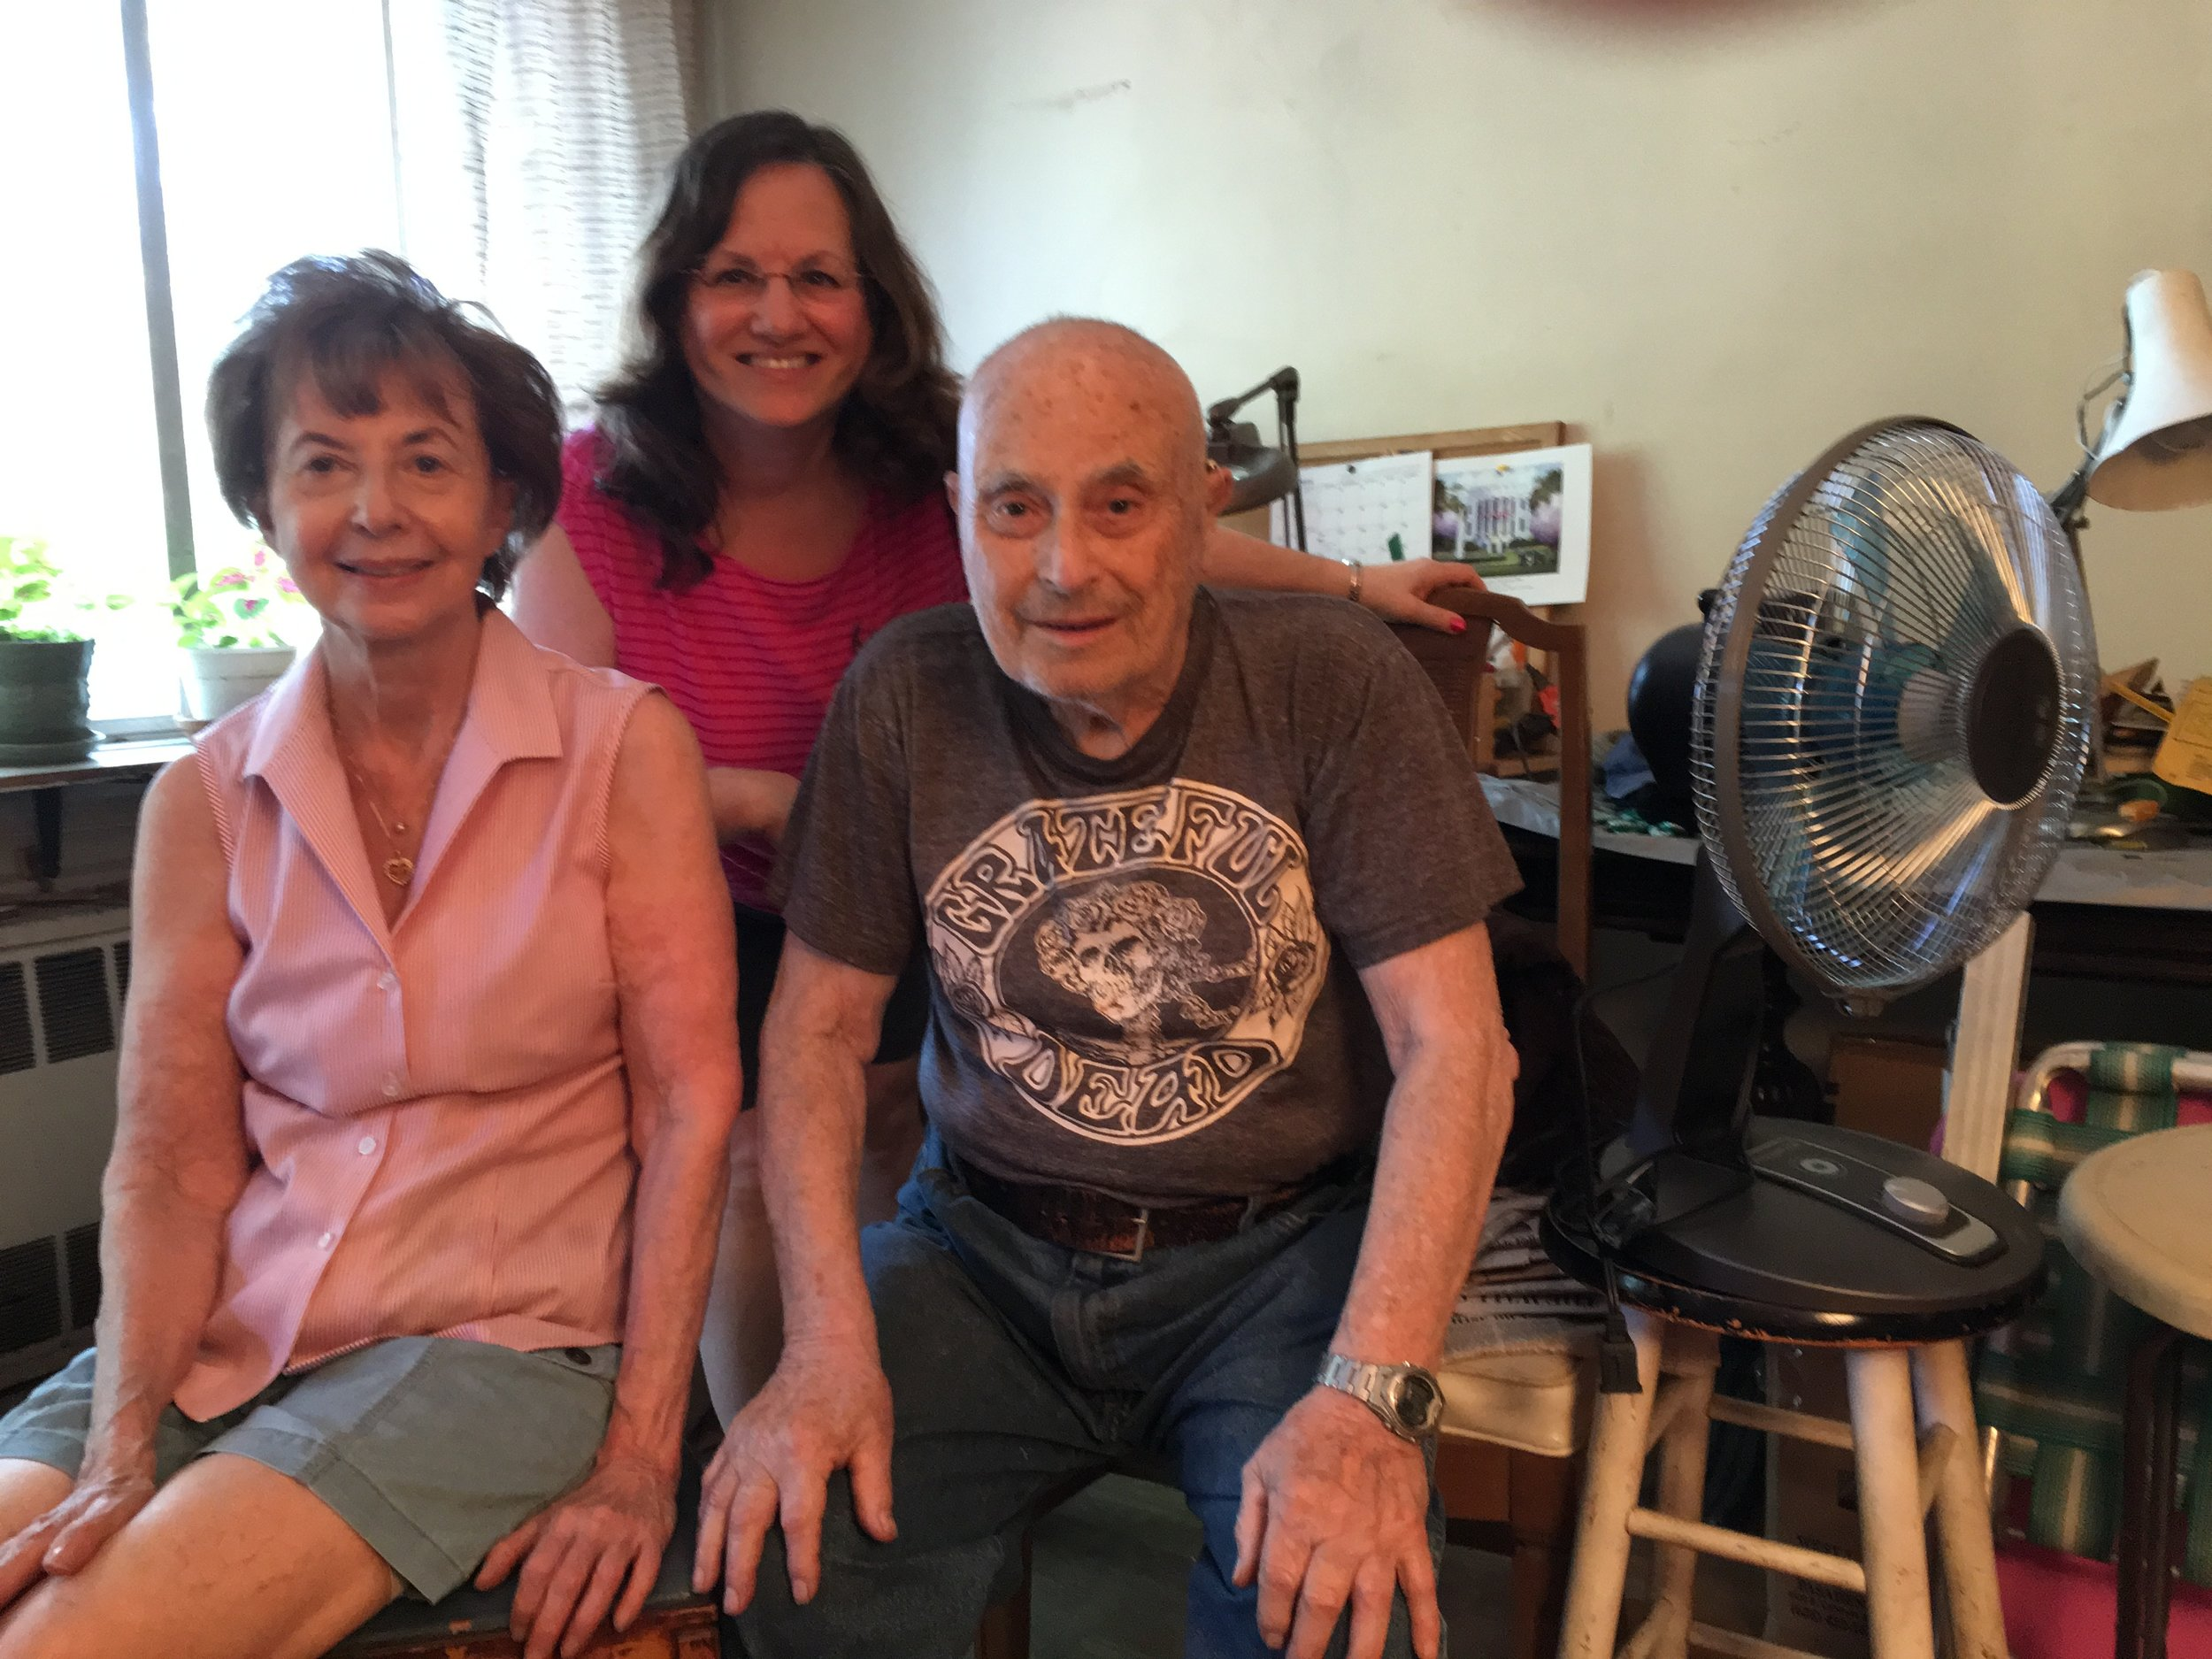 June 26, 2016 Rose and her brother Lou Weber and me (Sharon Mark Cohen) in the middle Brooklyn, N.Y.